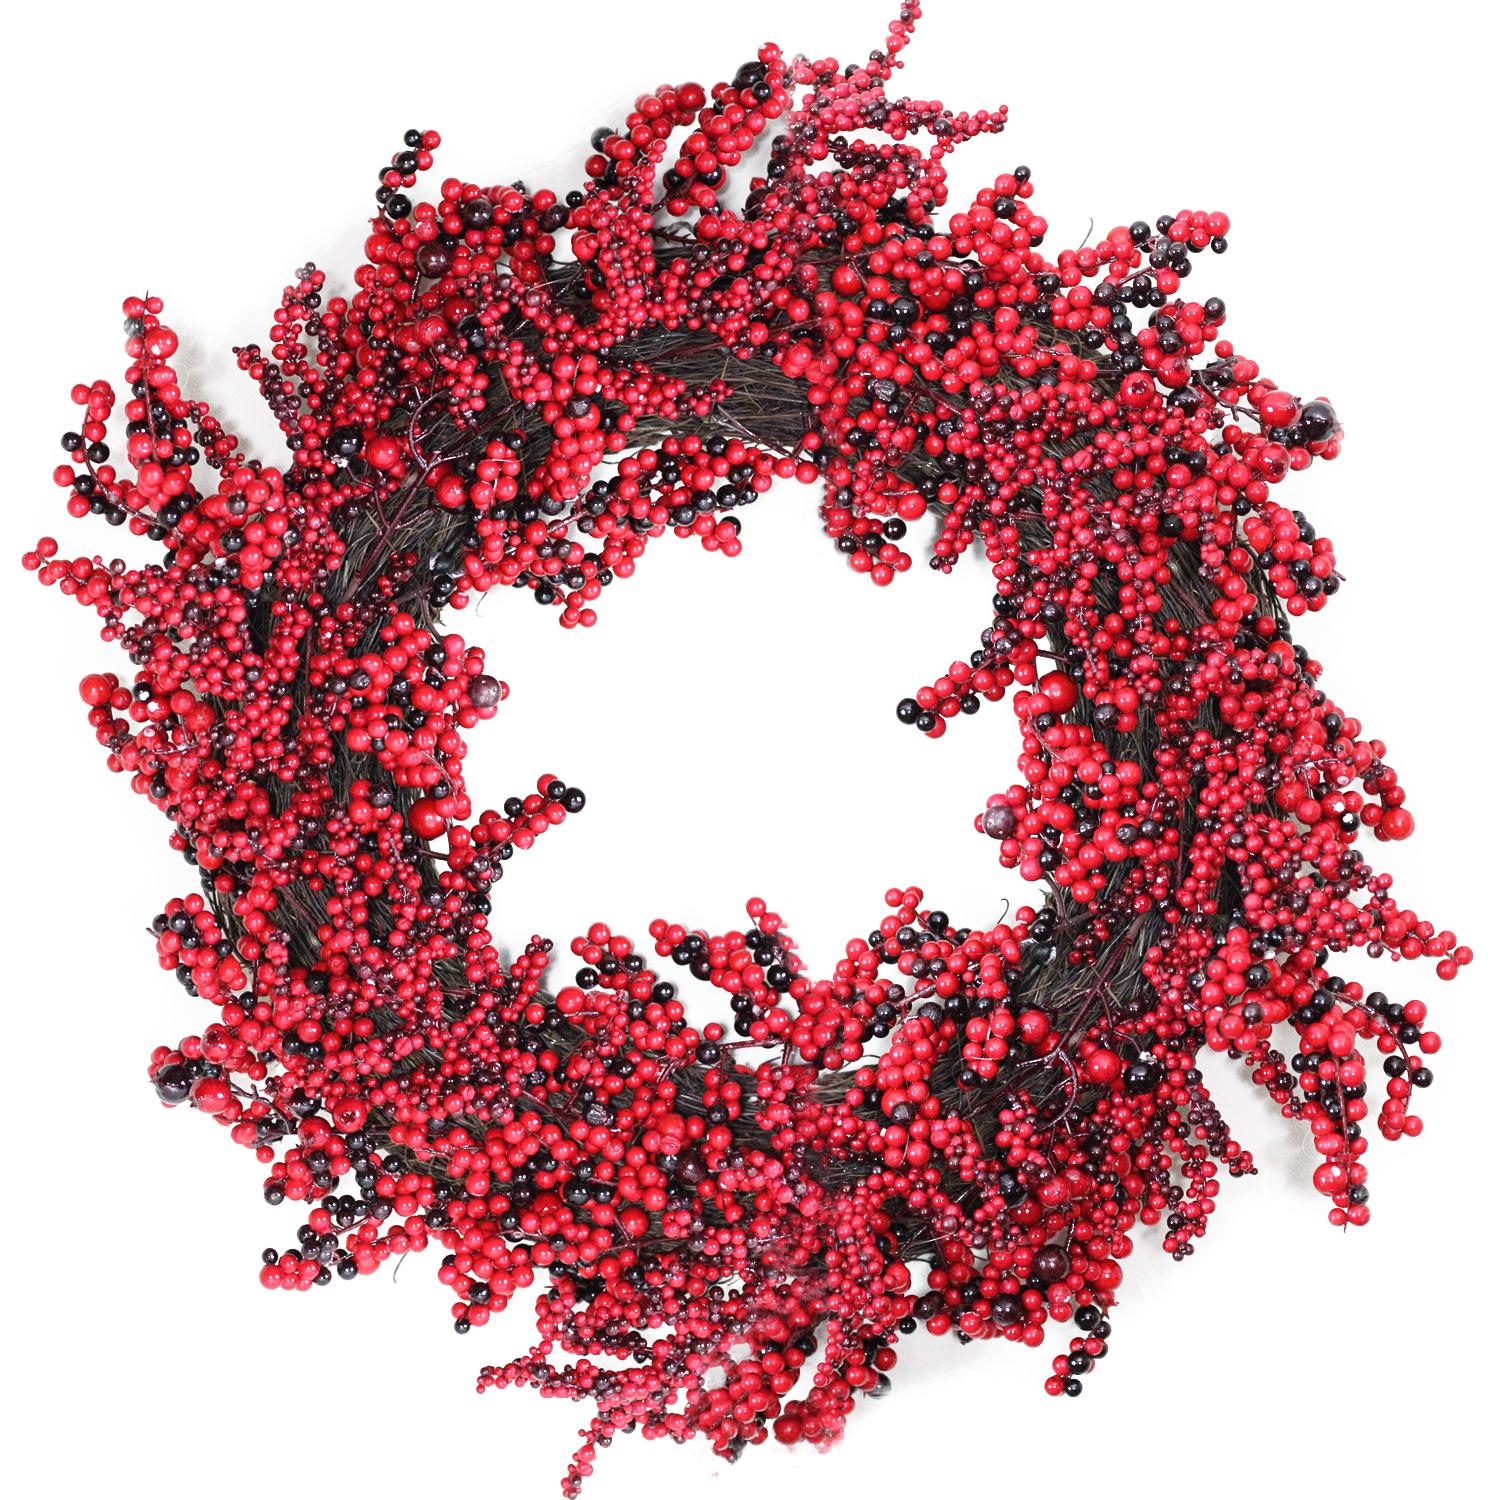 Northlight 22 Decorative Artificial Burgundy Red Berry Christmas Wreath  -  Unlit